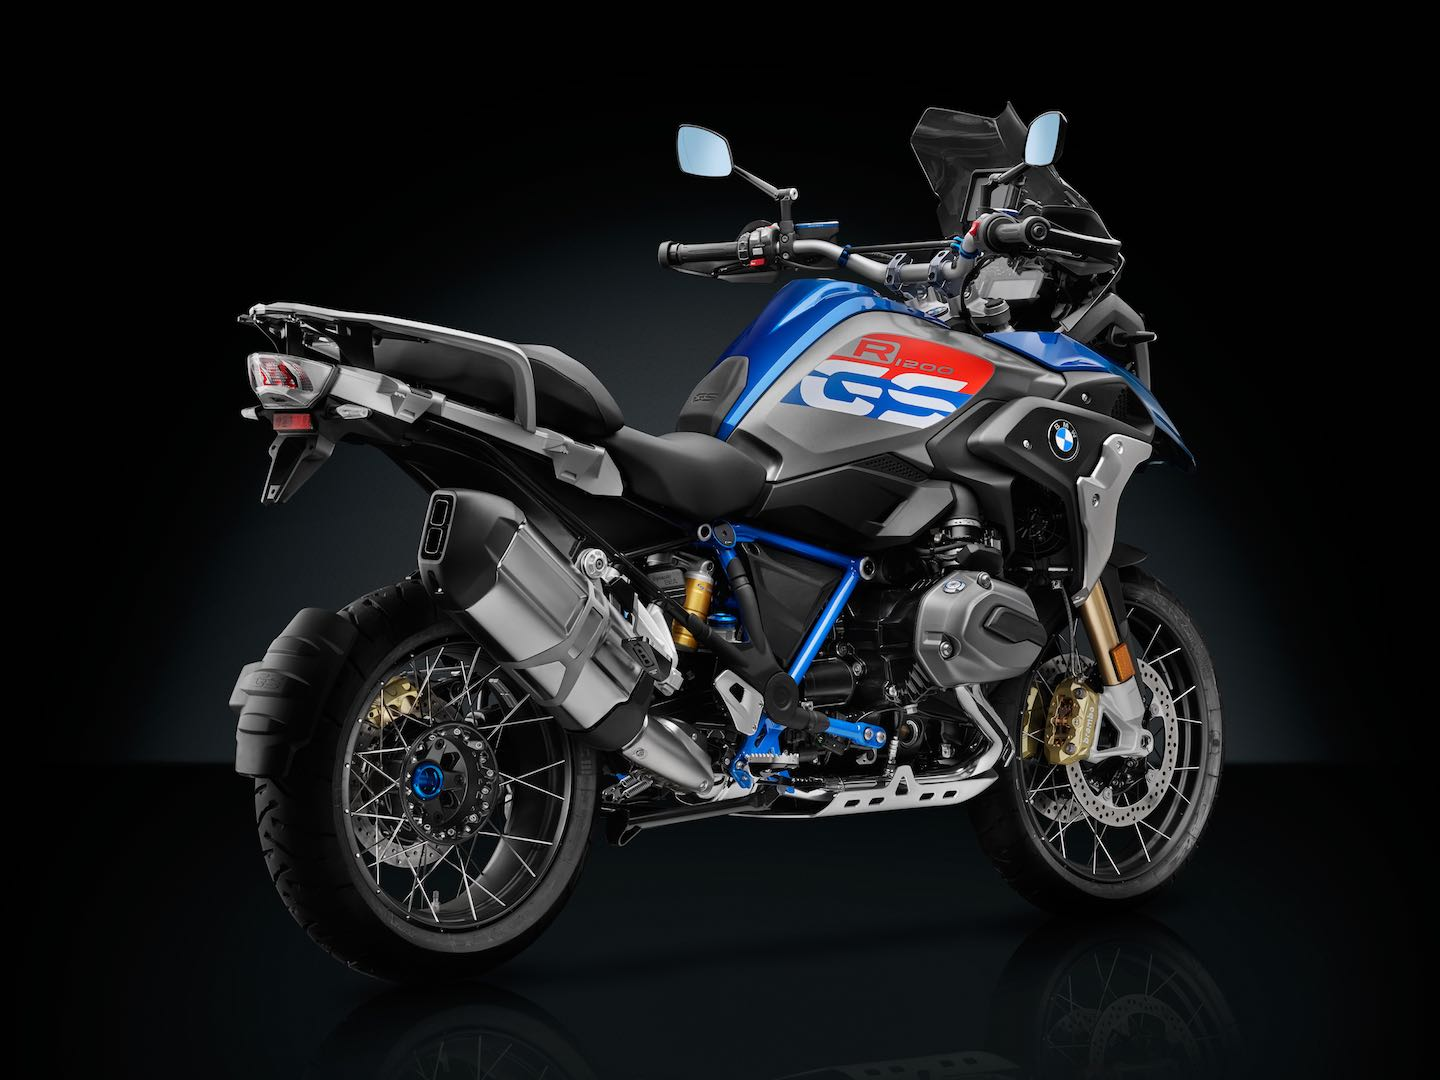 bmw r 1200 gs adventure 2018 motogallery classificados. Black Bedroom Furniture Sets. Home Design Ideas